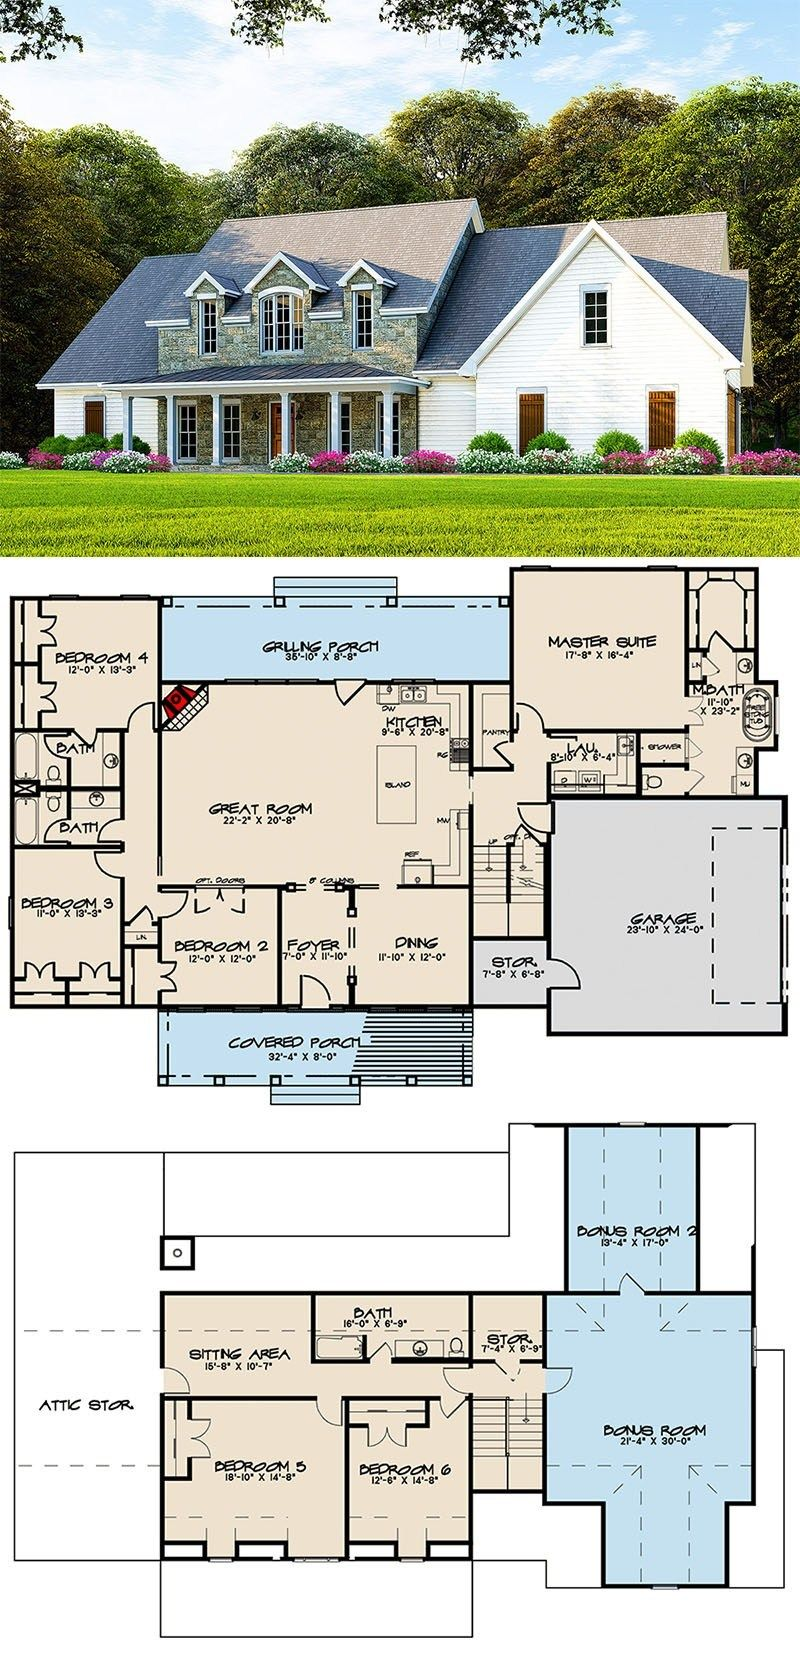 7 Most Popular Farmhouse Plans With Pictures Nikki S Plate House Plans Farmhouse Pool House Plans Farmhouse Plans